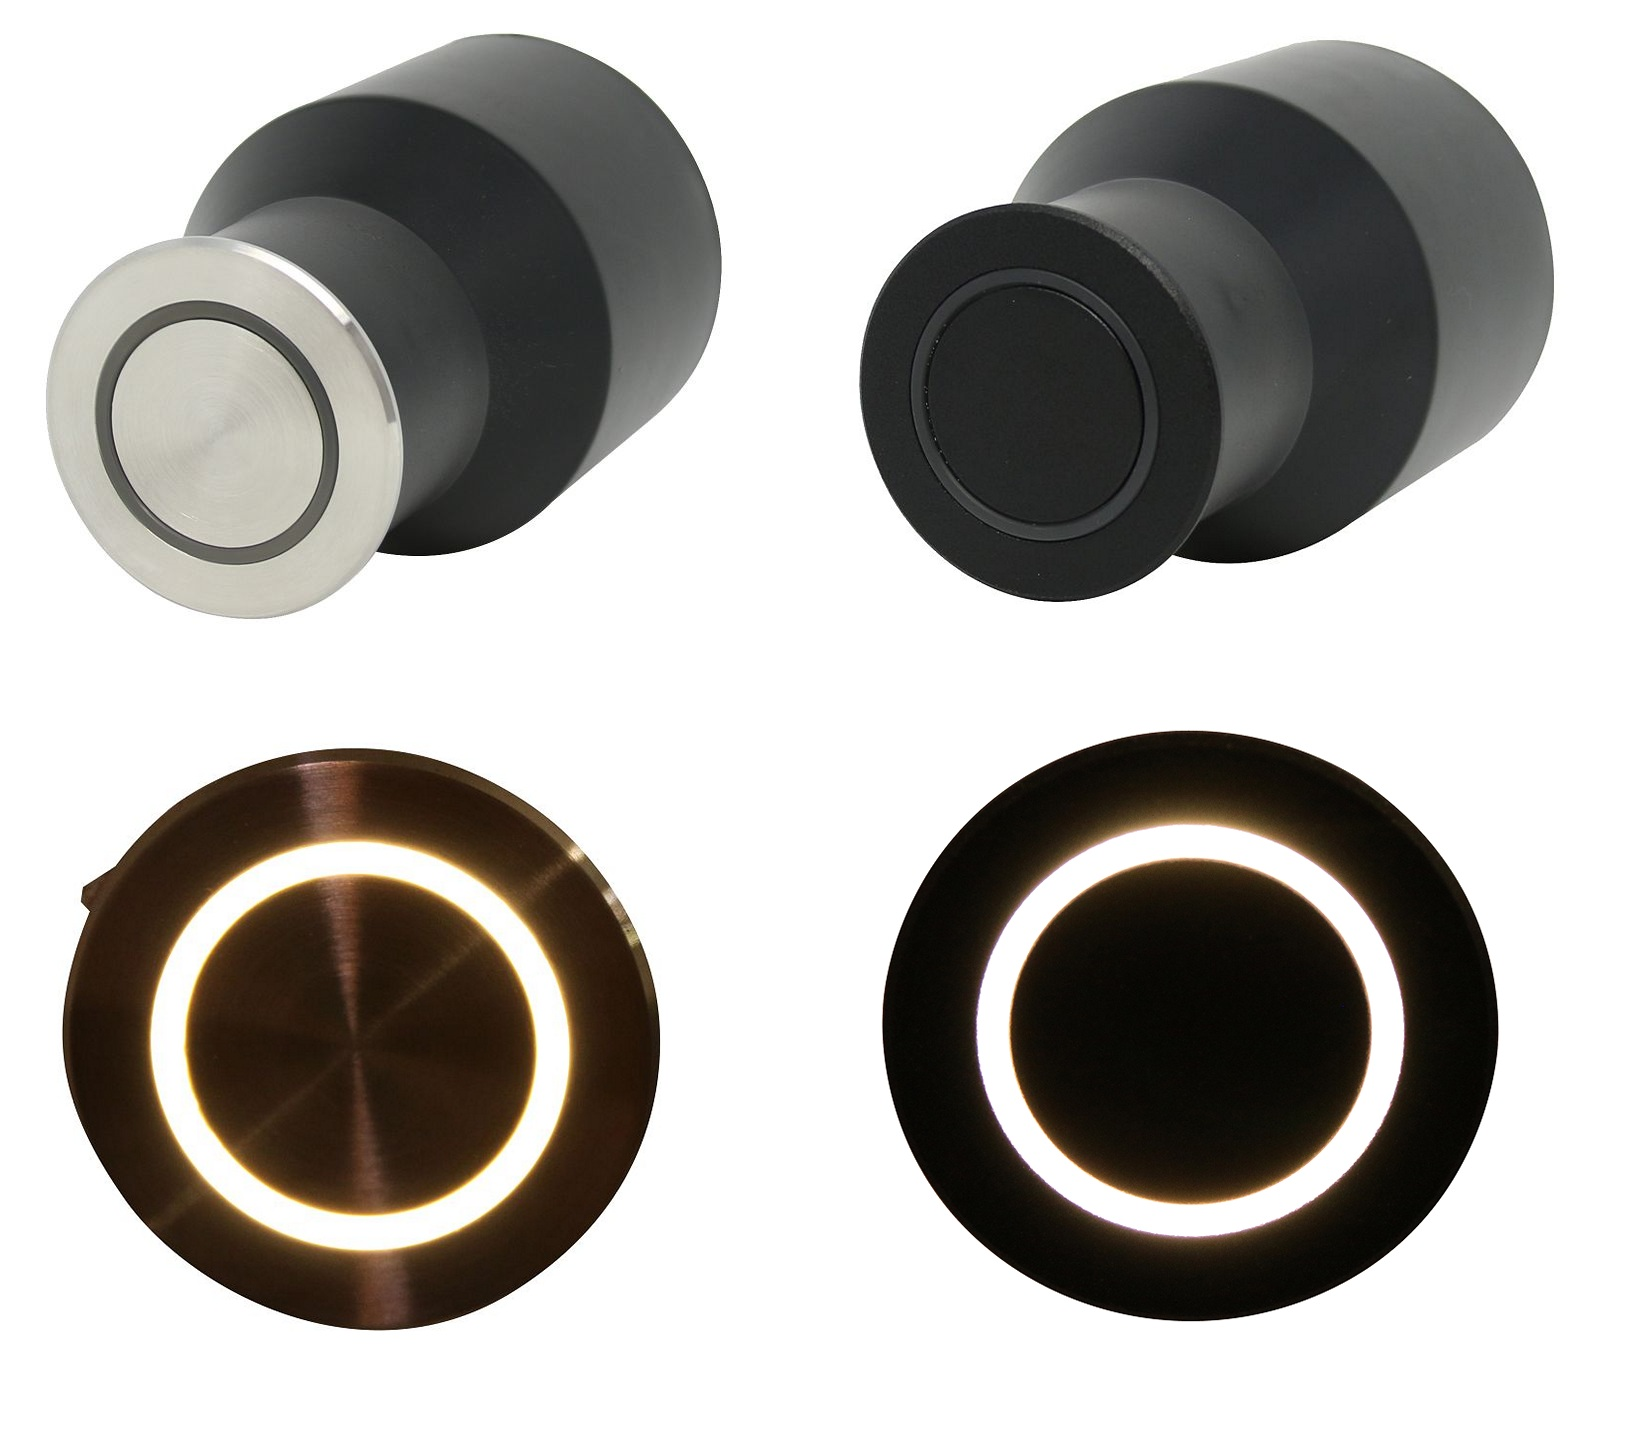 HALO Recessed Floor or Wall Light